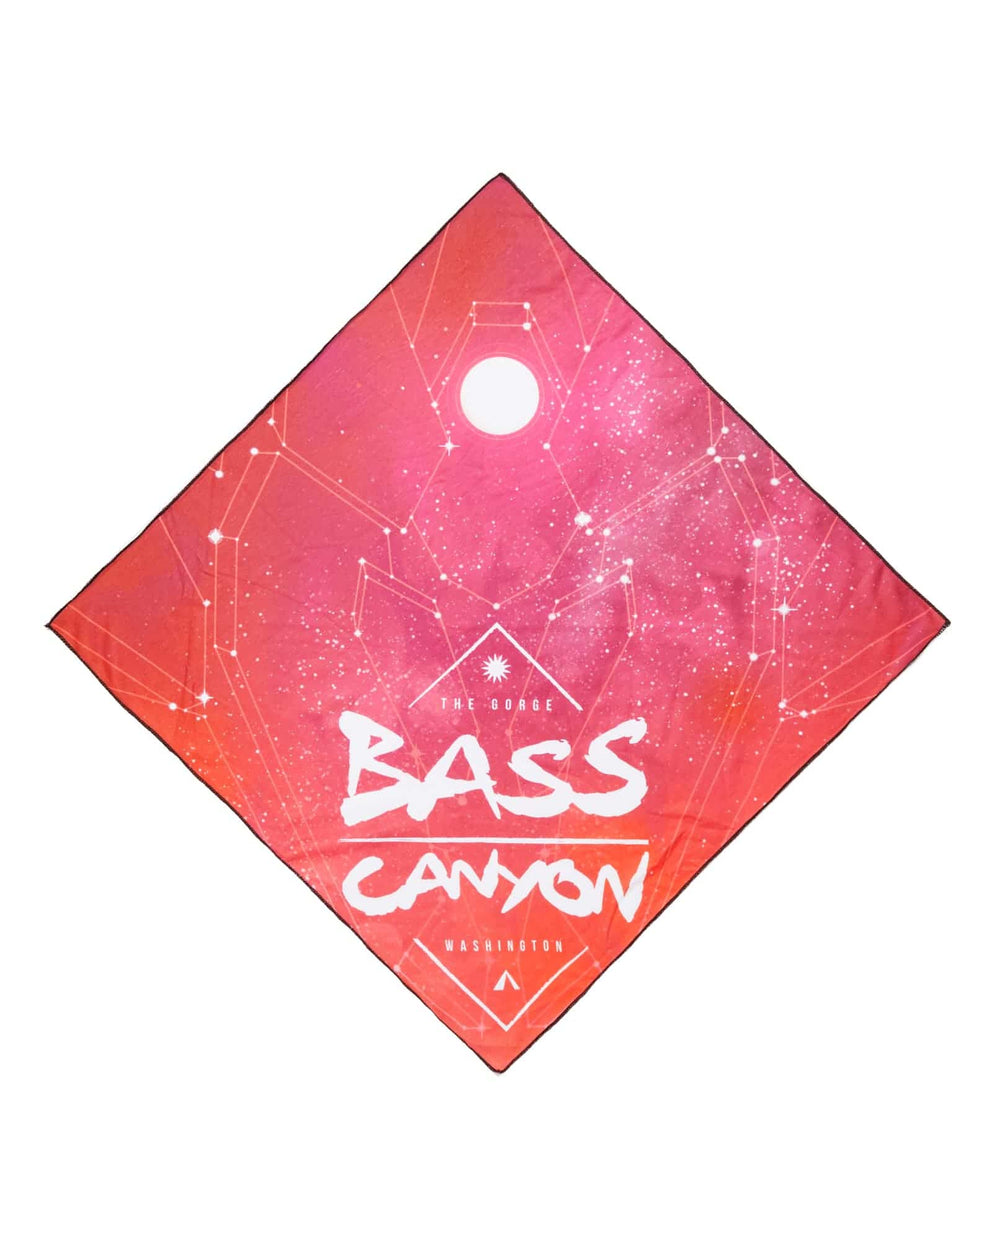 Official Bass Canyon 2018 Bandana - Sunset